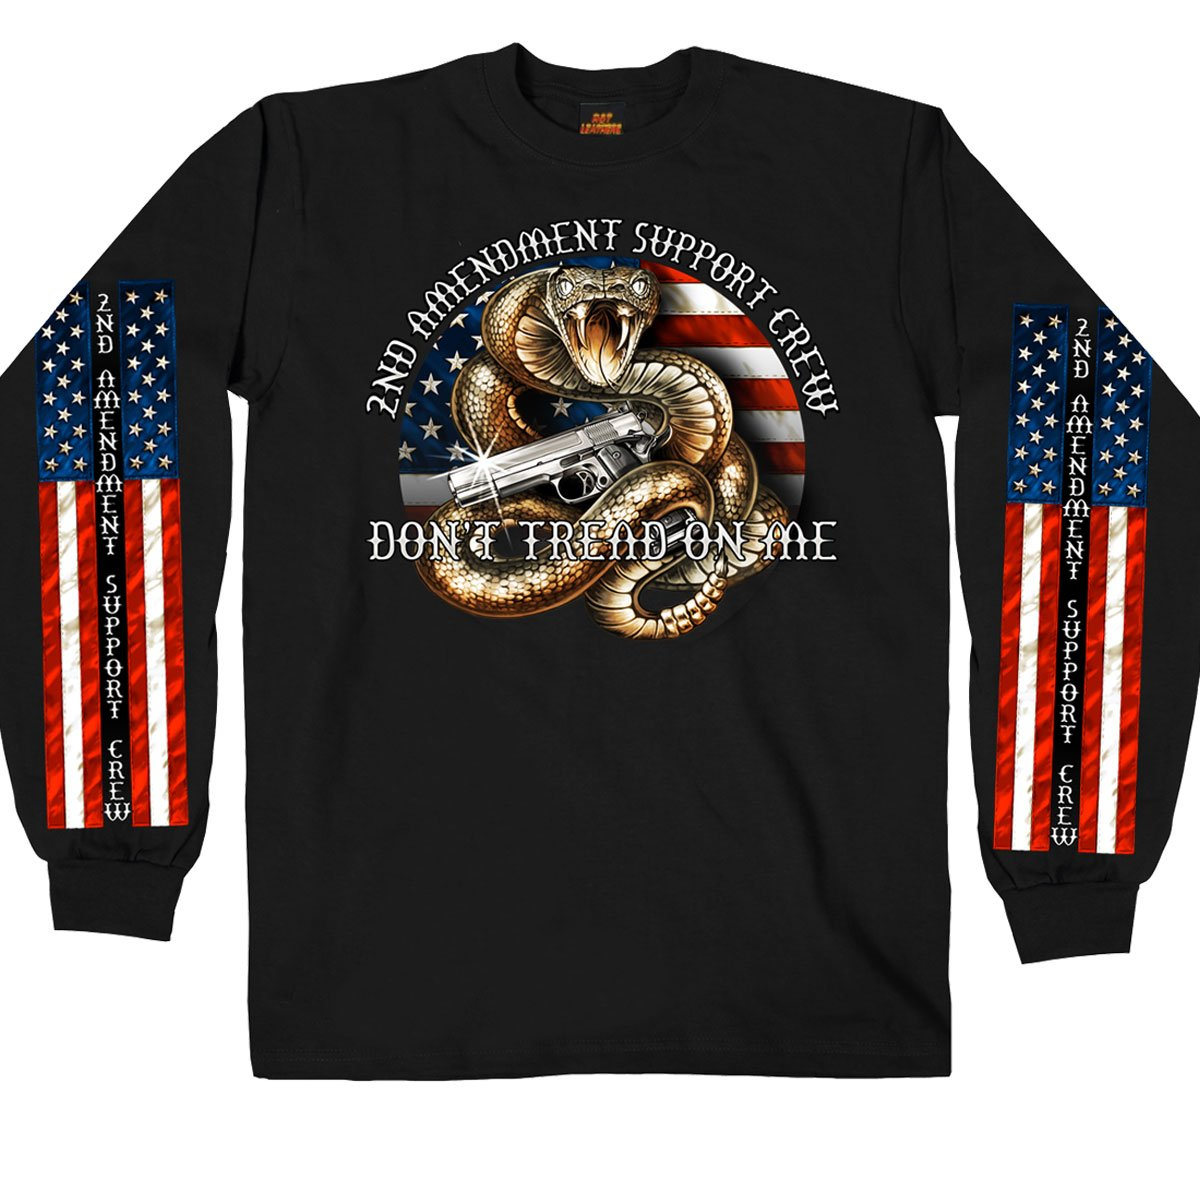 Hot Leathers Men's Long Sleeve 2nd Amendment Shirt (Black, Medium) GMS2371-9726